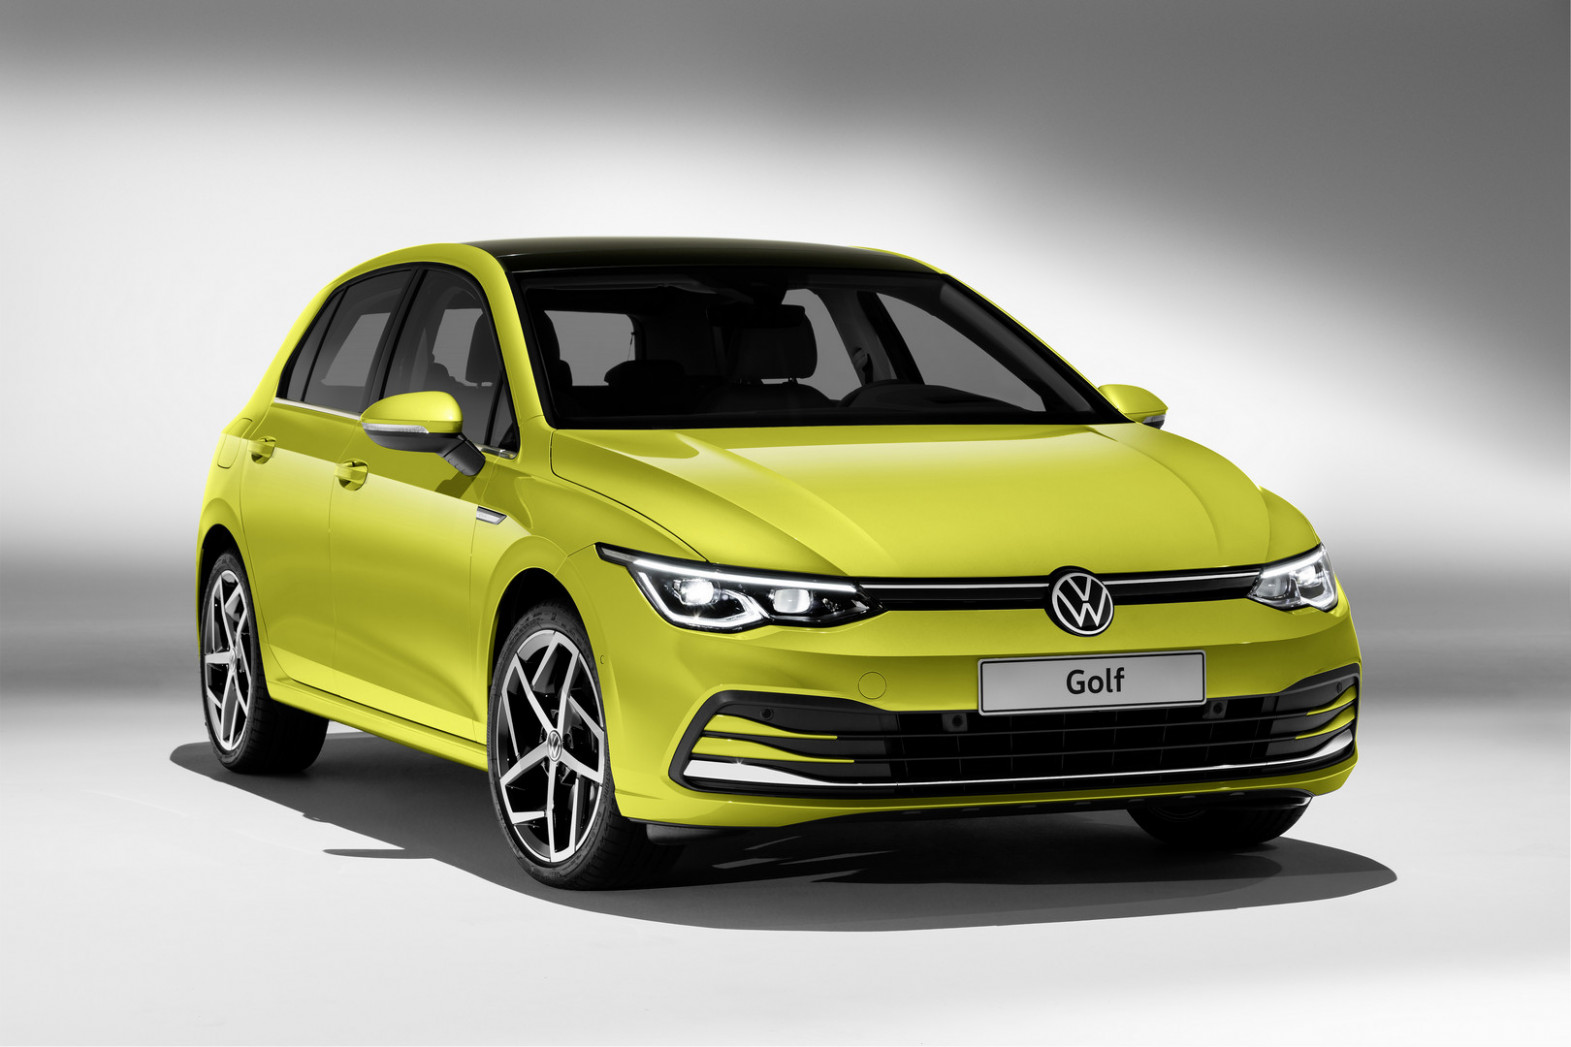 12 Volkswagen Golf 12 Officially Revealed! - GTspirit